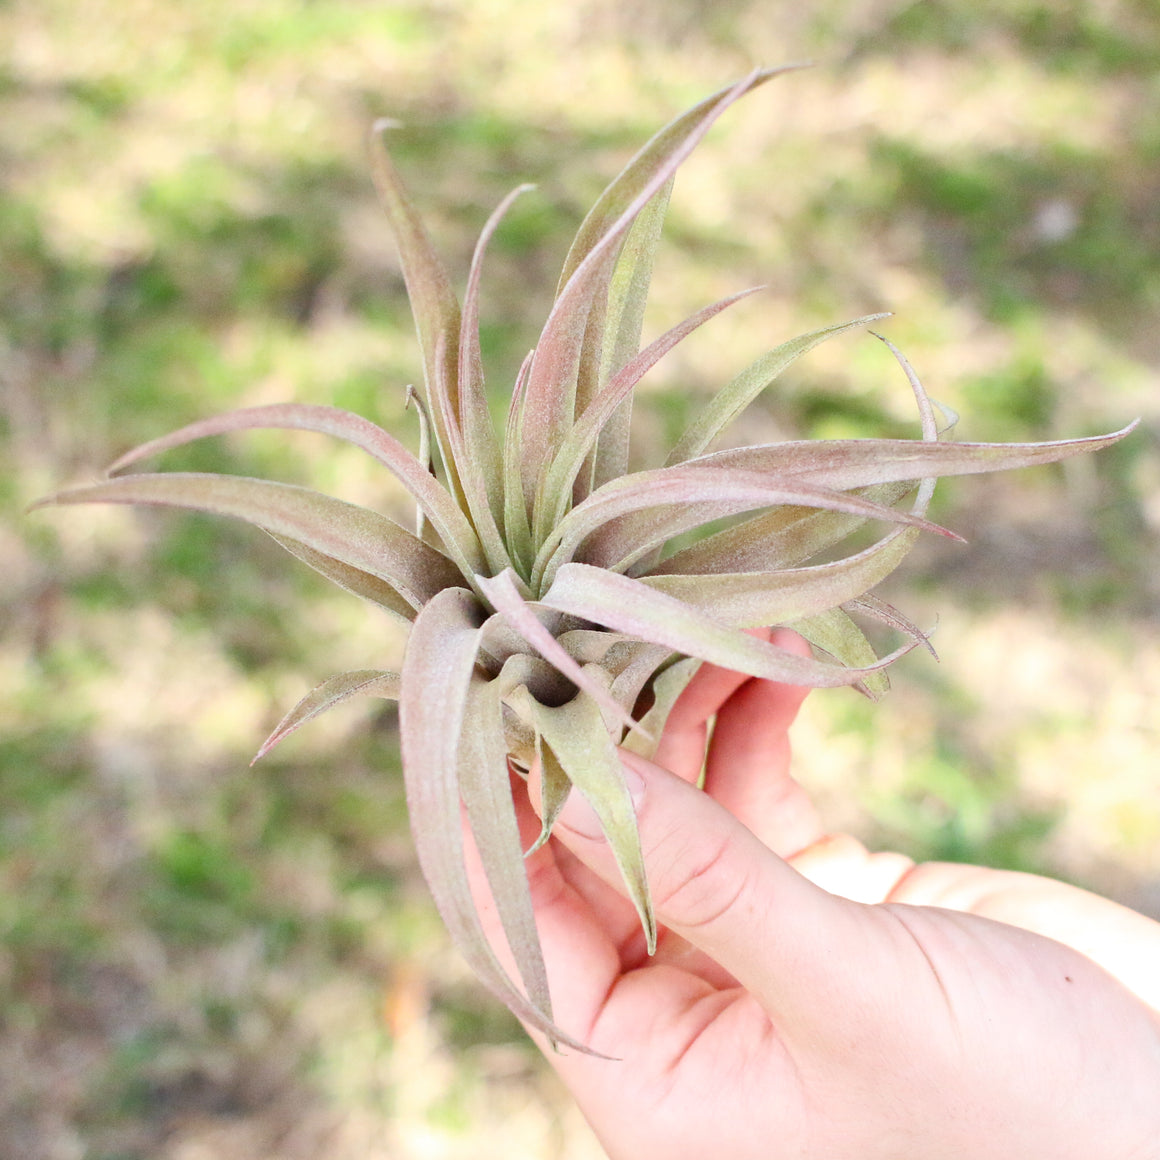 SALE - Large 'Capitata Peach' - Set of  5, 10, or 20 Air Plants - 50% Off